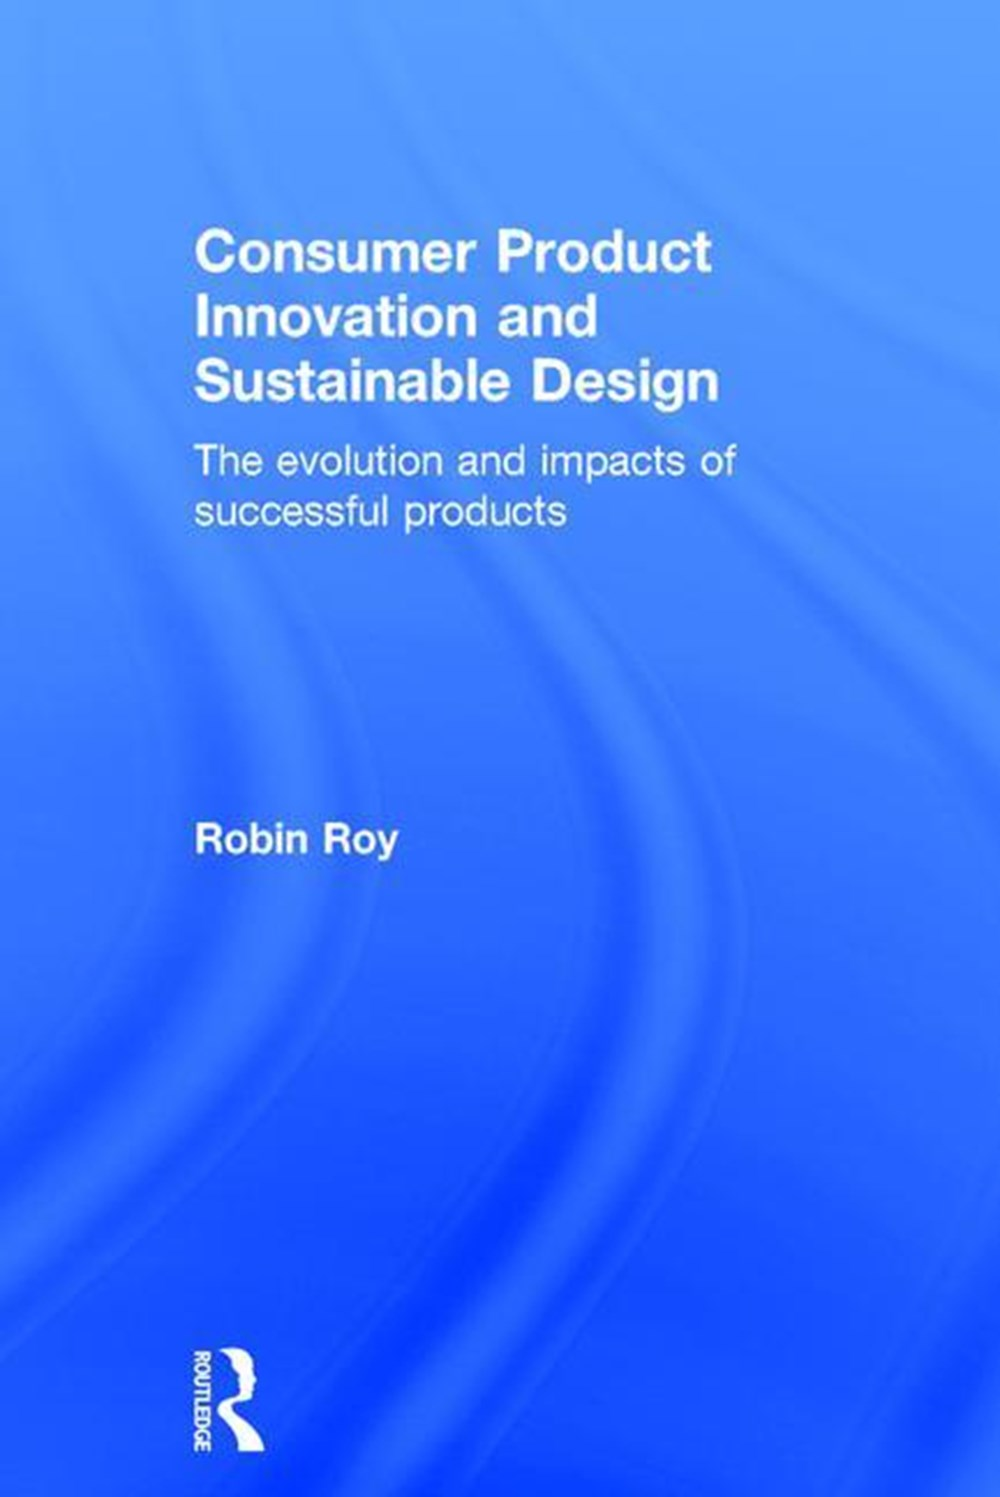 Consumer Product Innovation and Sustainable Design The Evolution and Impacts of Successful Products